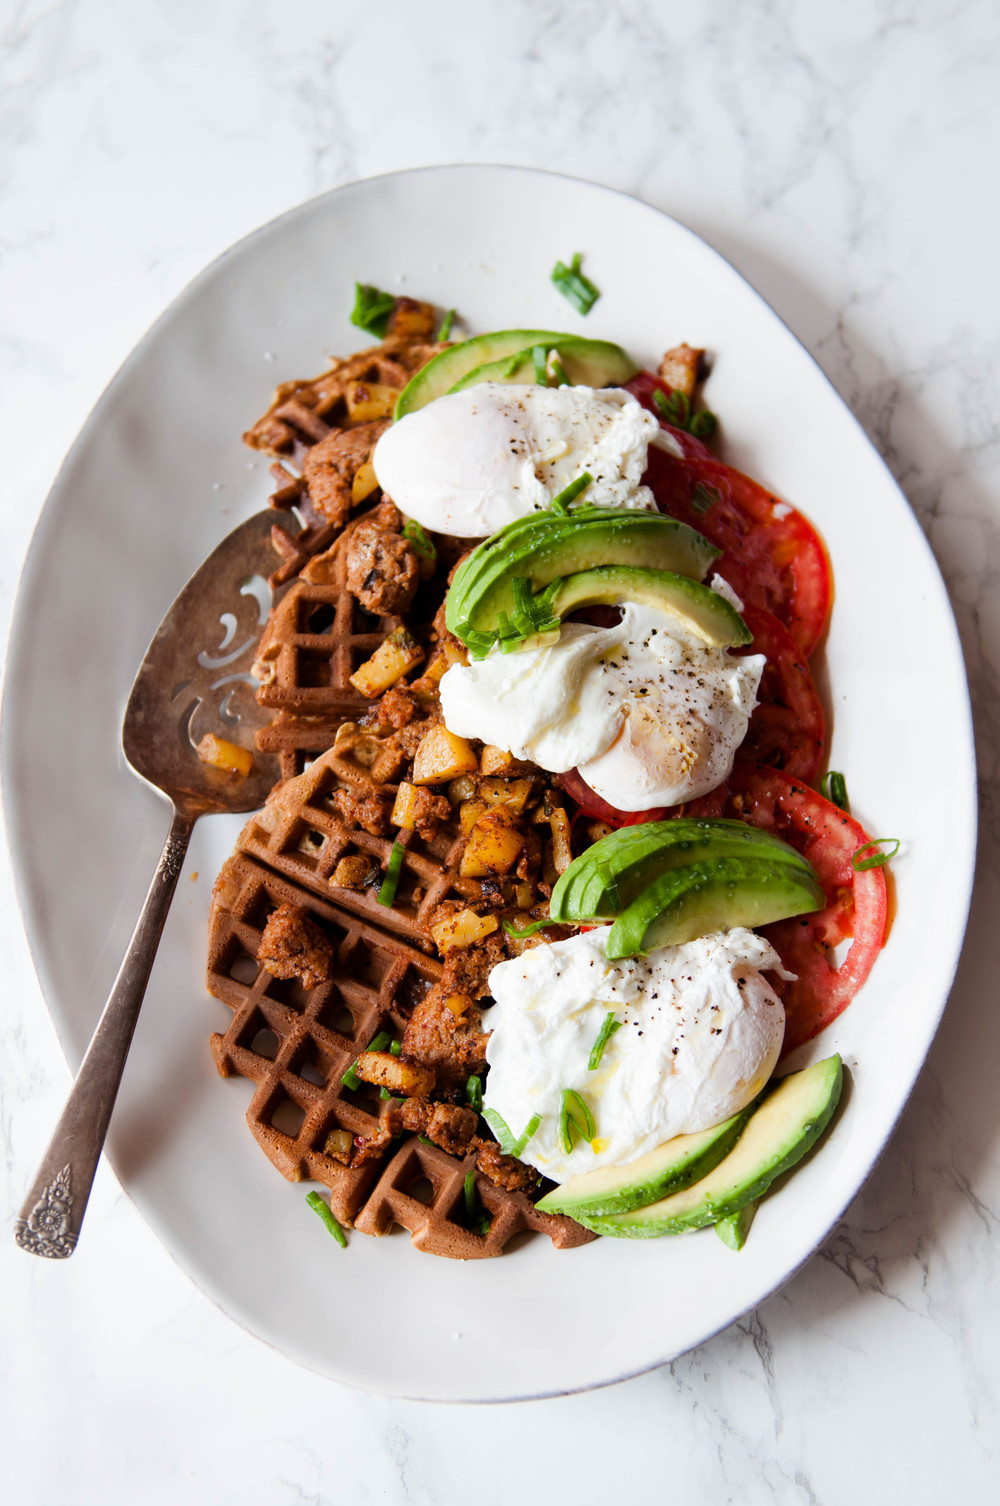 Chickpea and Einkorn Waffles with chorizo hash, poached eggs, sliced Summer tomatoes and avocado